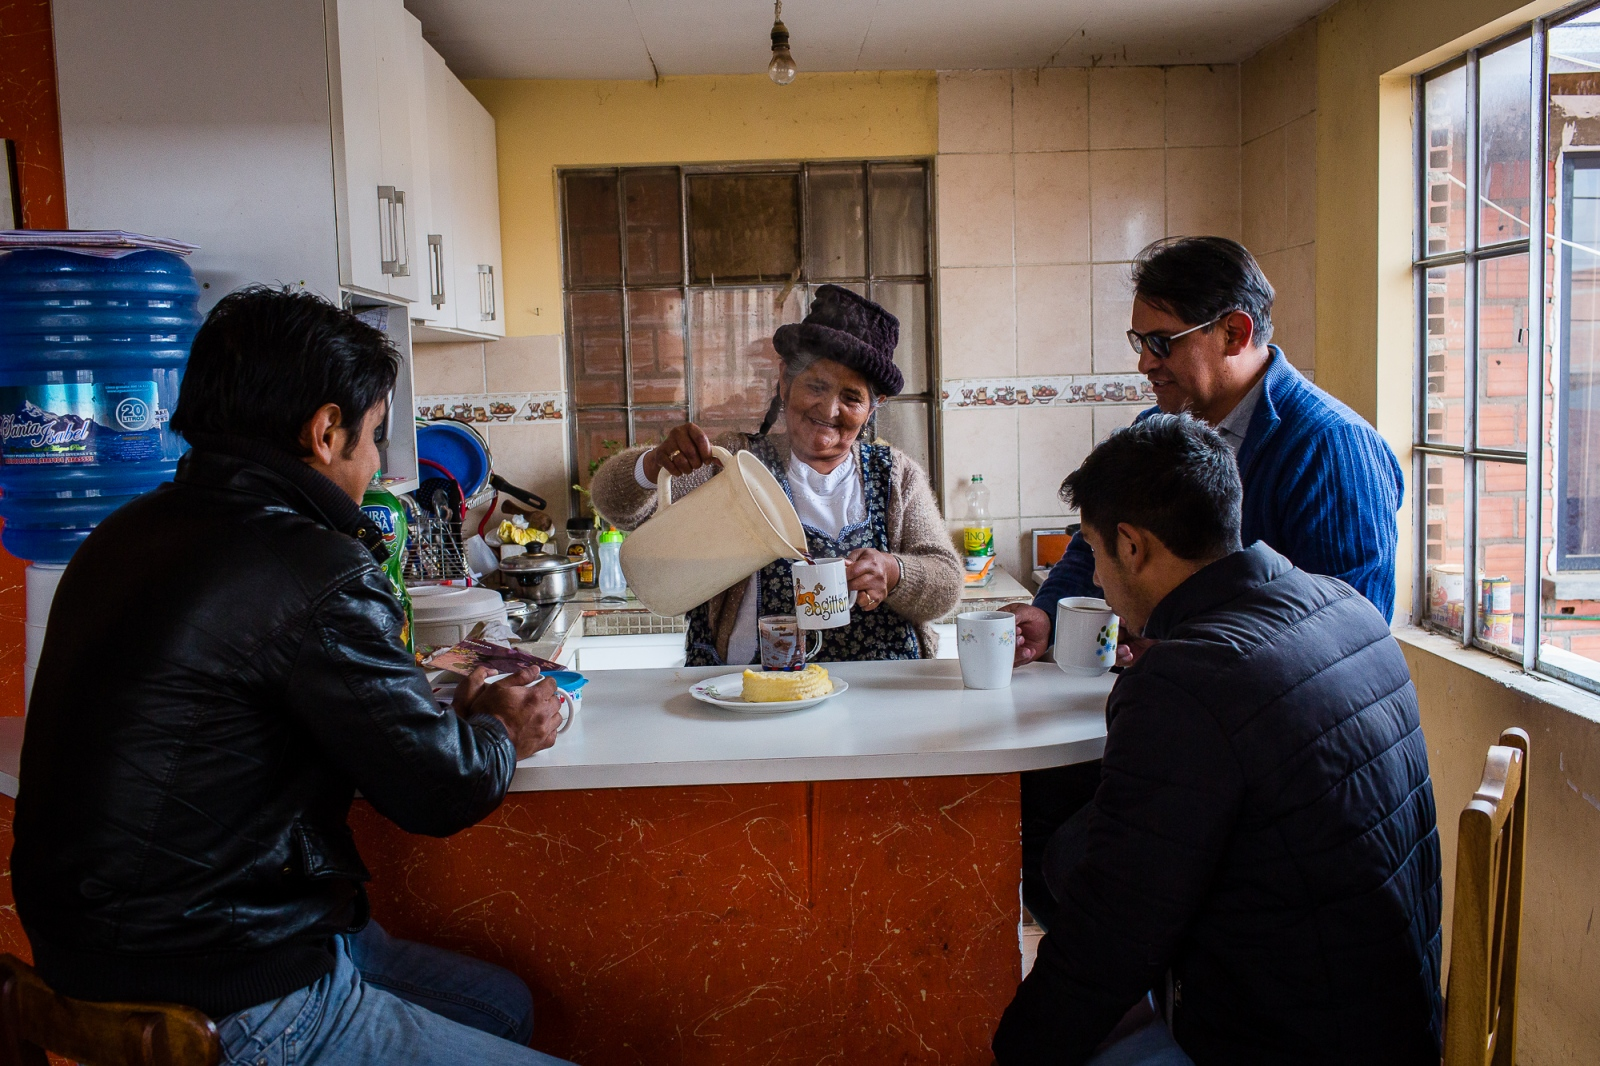 Catalina Silvera pours coffee during a meeting with three of her six sons at the Silvera furniture factory in El Alto. While Catalina's sons run the daily business, she still makes the major decisions.